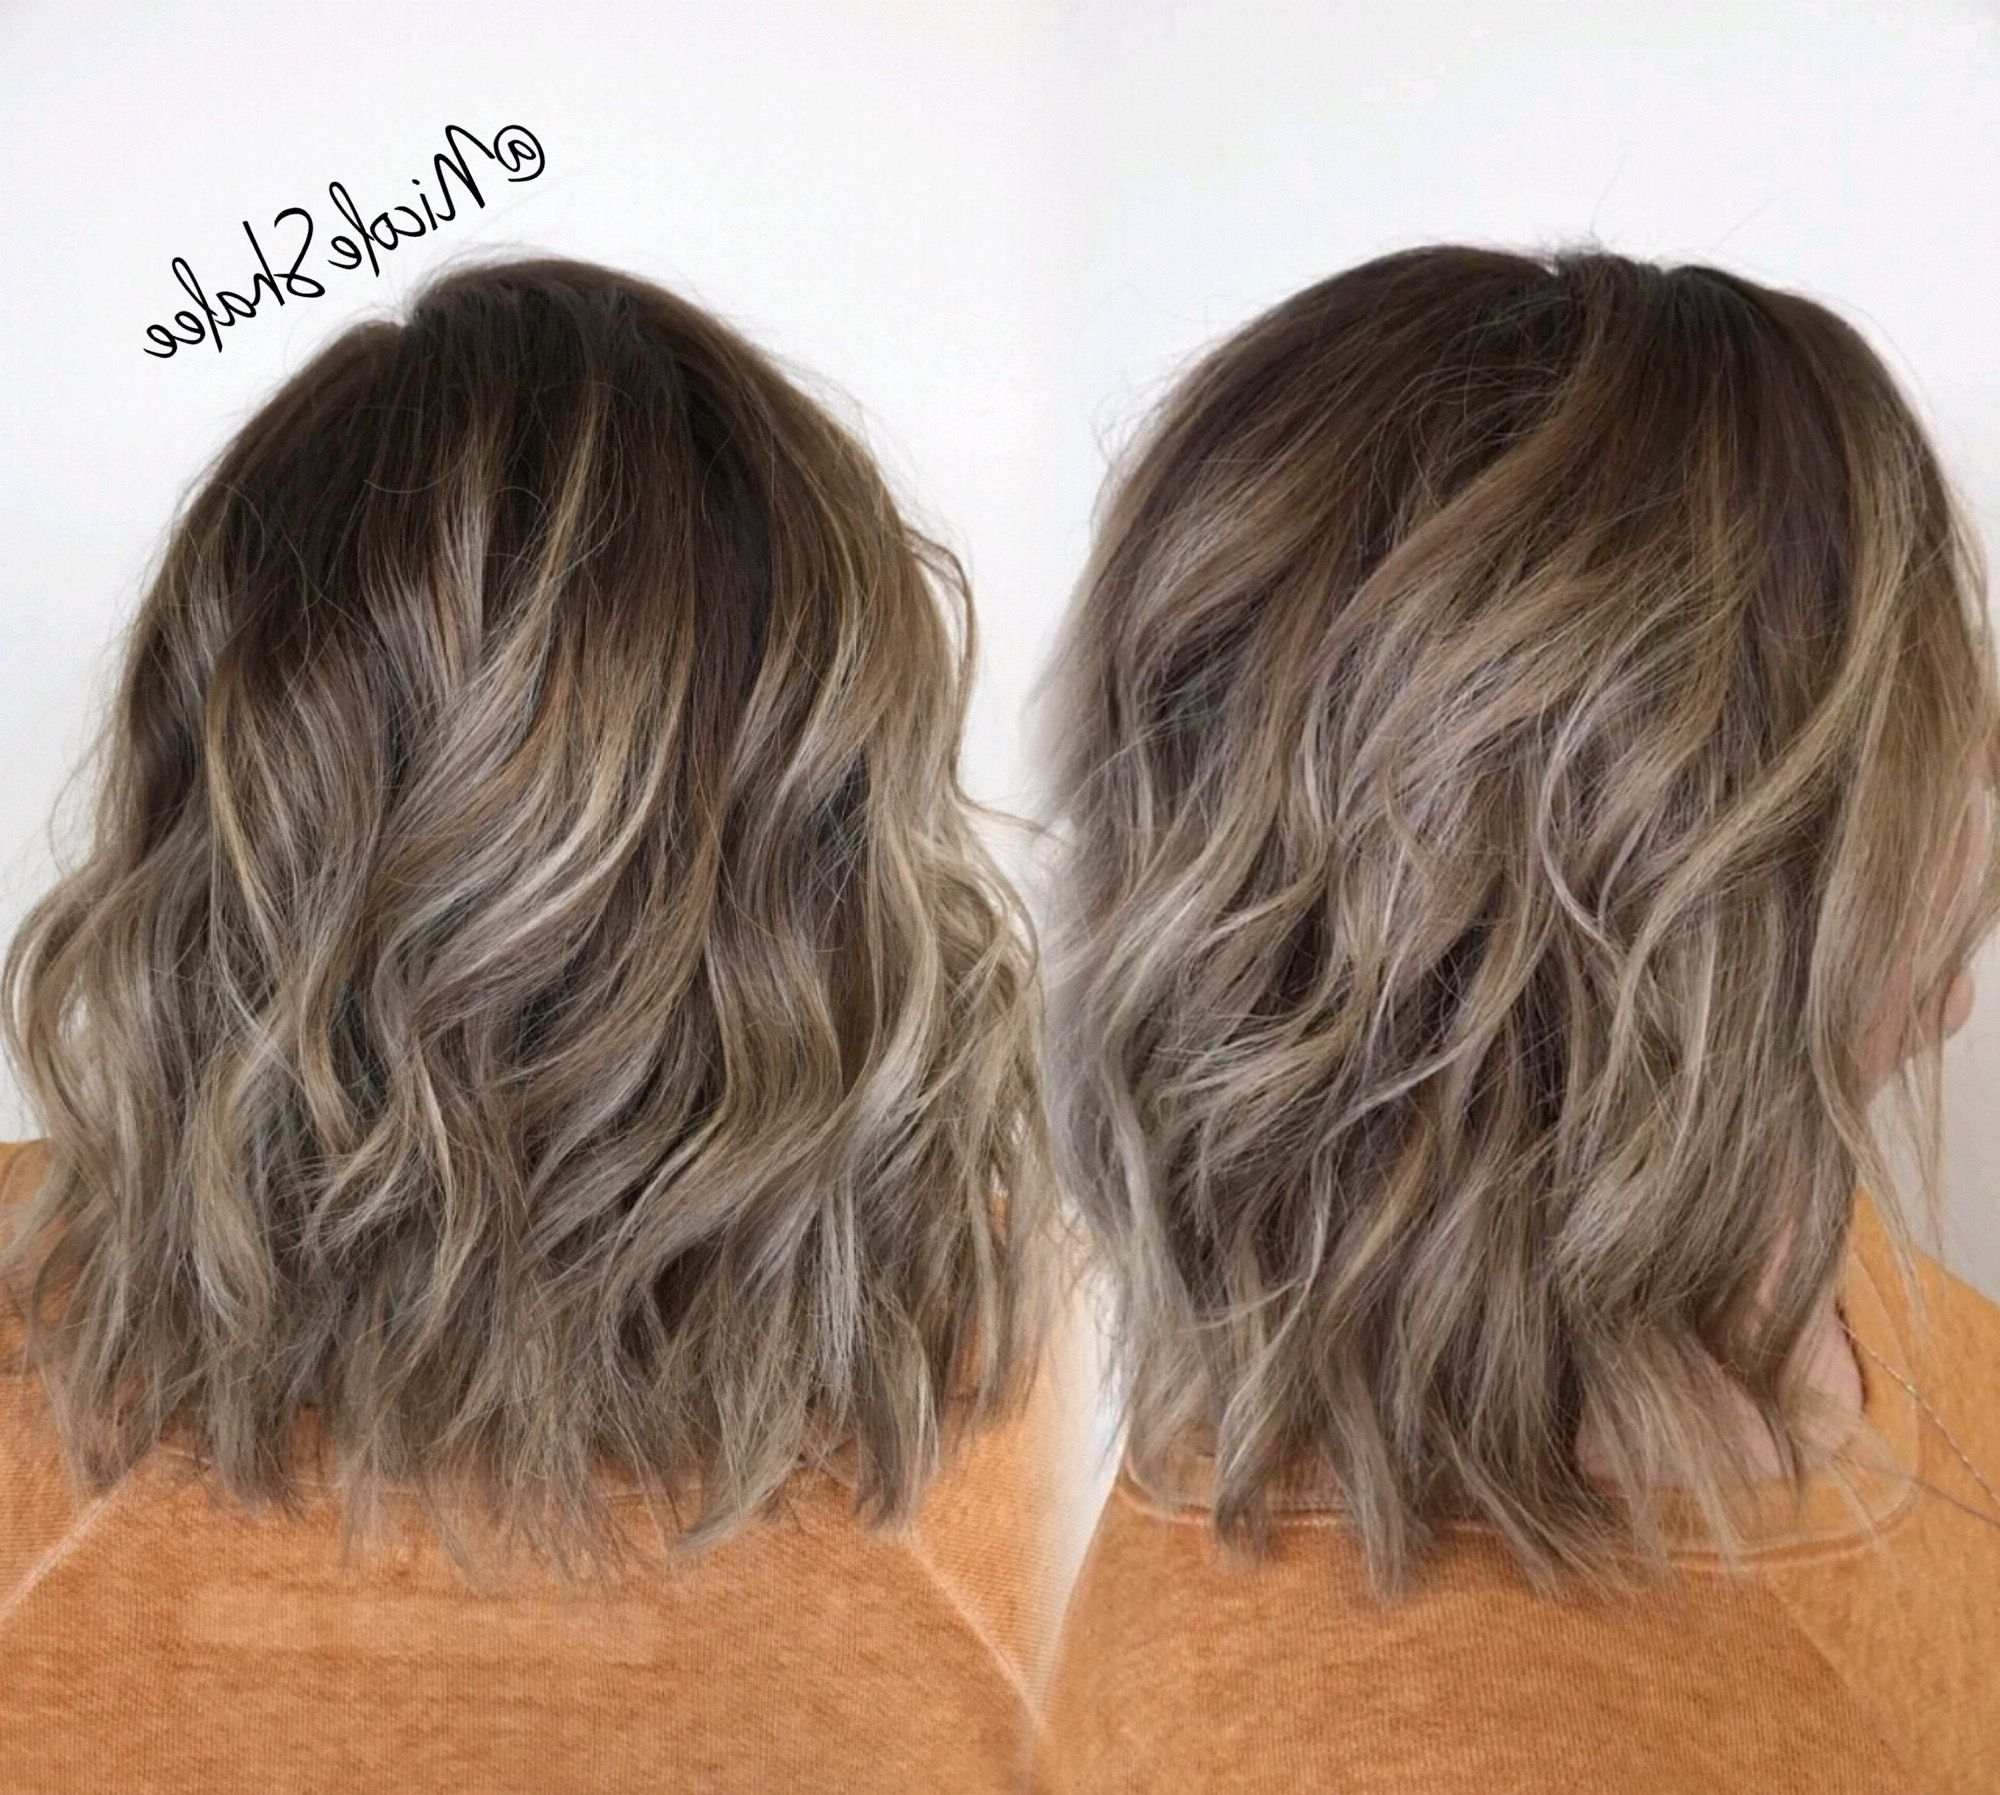 2018 Rooty Long Bob Blonde Hairstyles With Regard To Shadow Root, Smudge Root, Balayage, Warm Highlights, Long Bob, Lob (View 3 of 20)